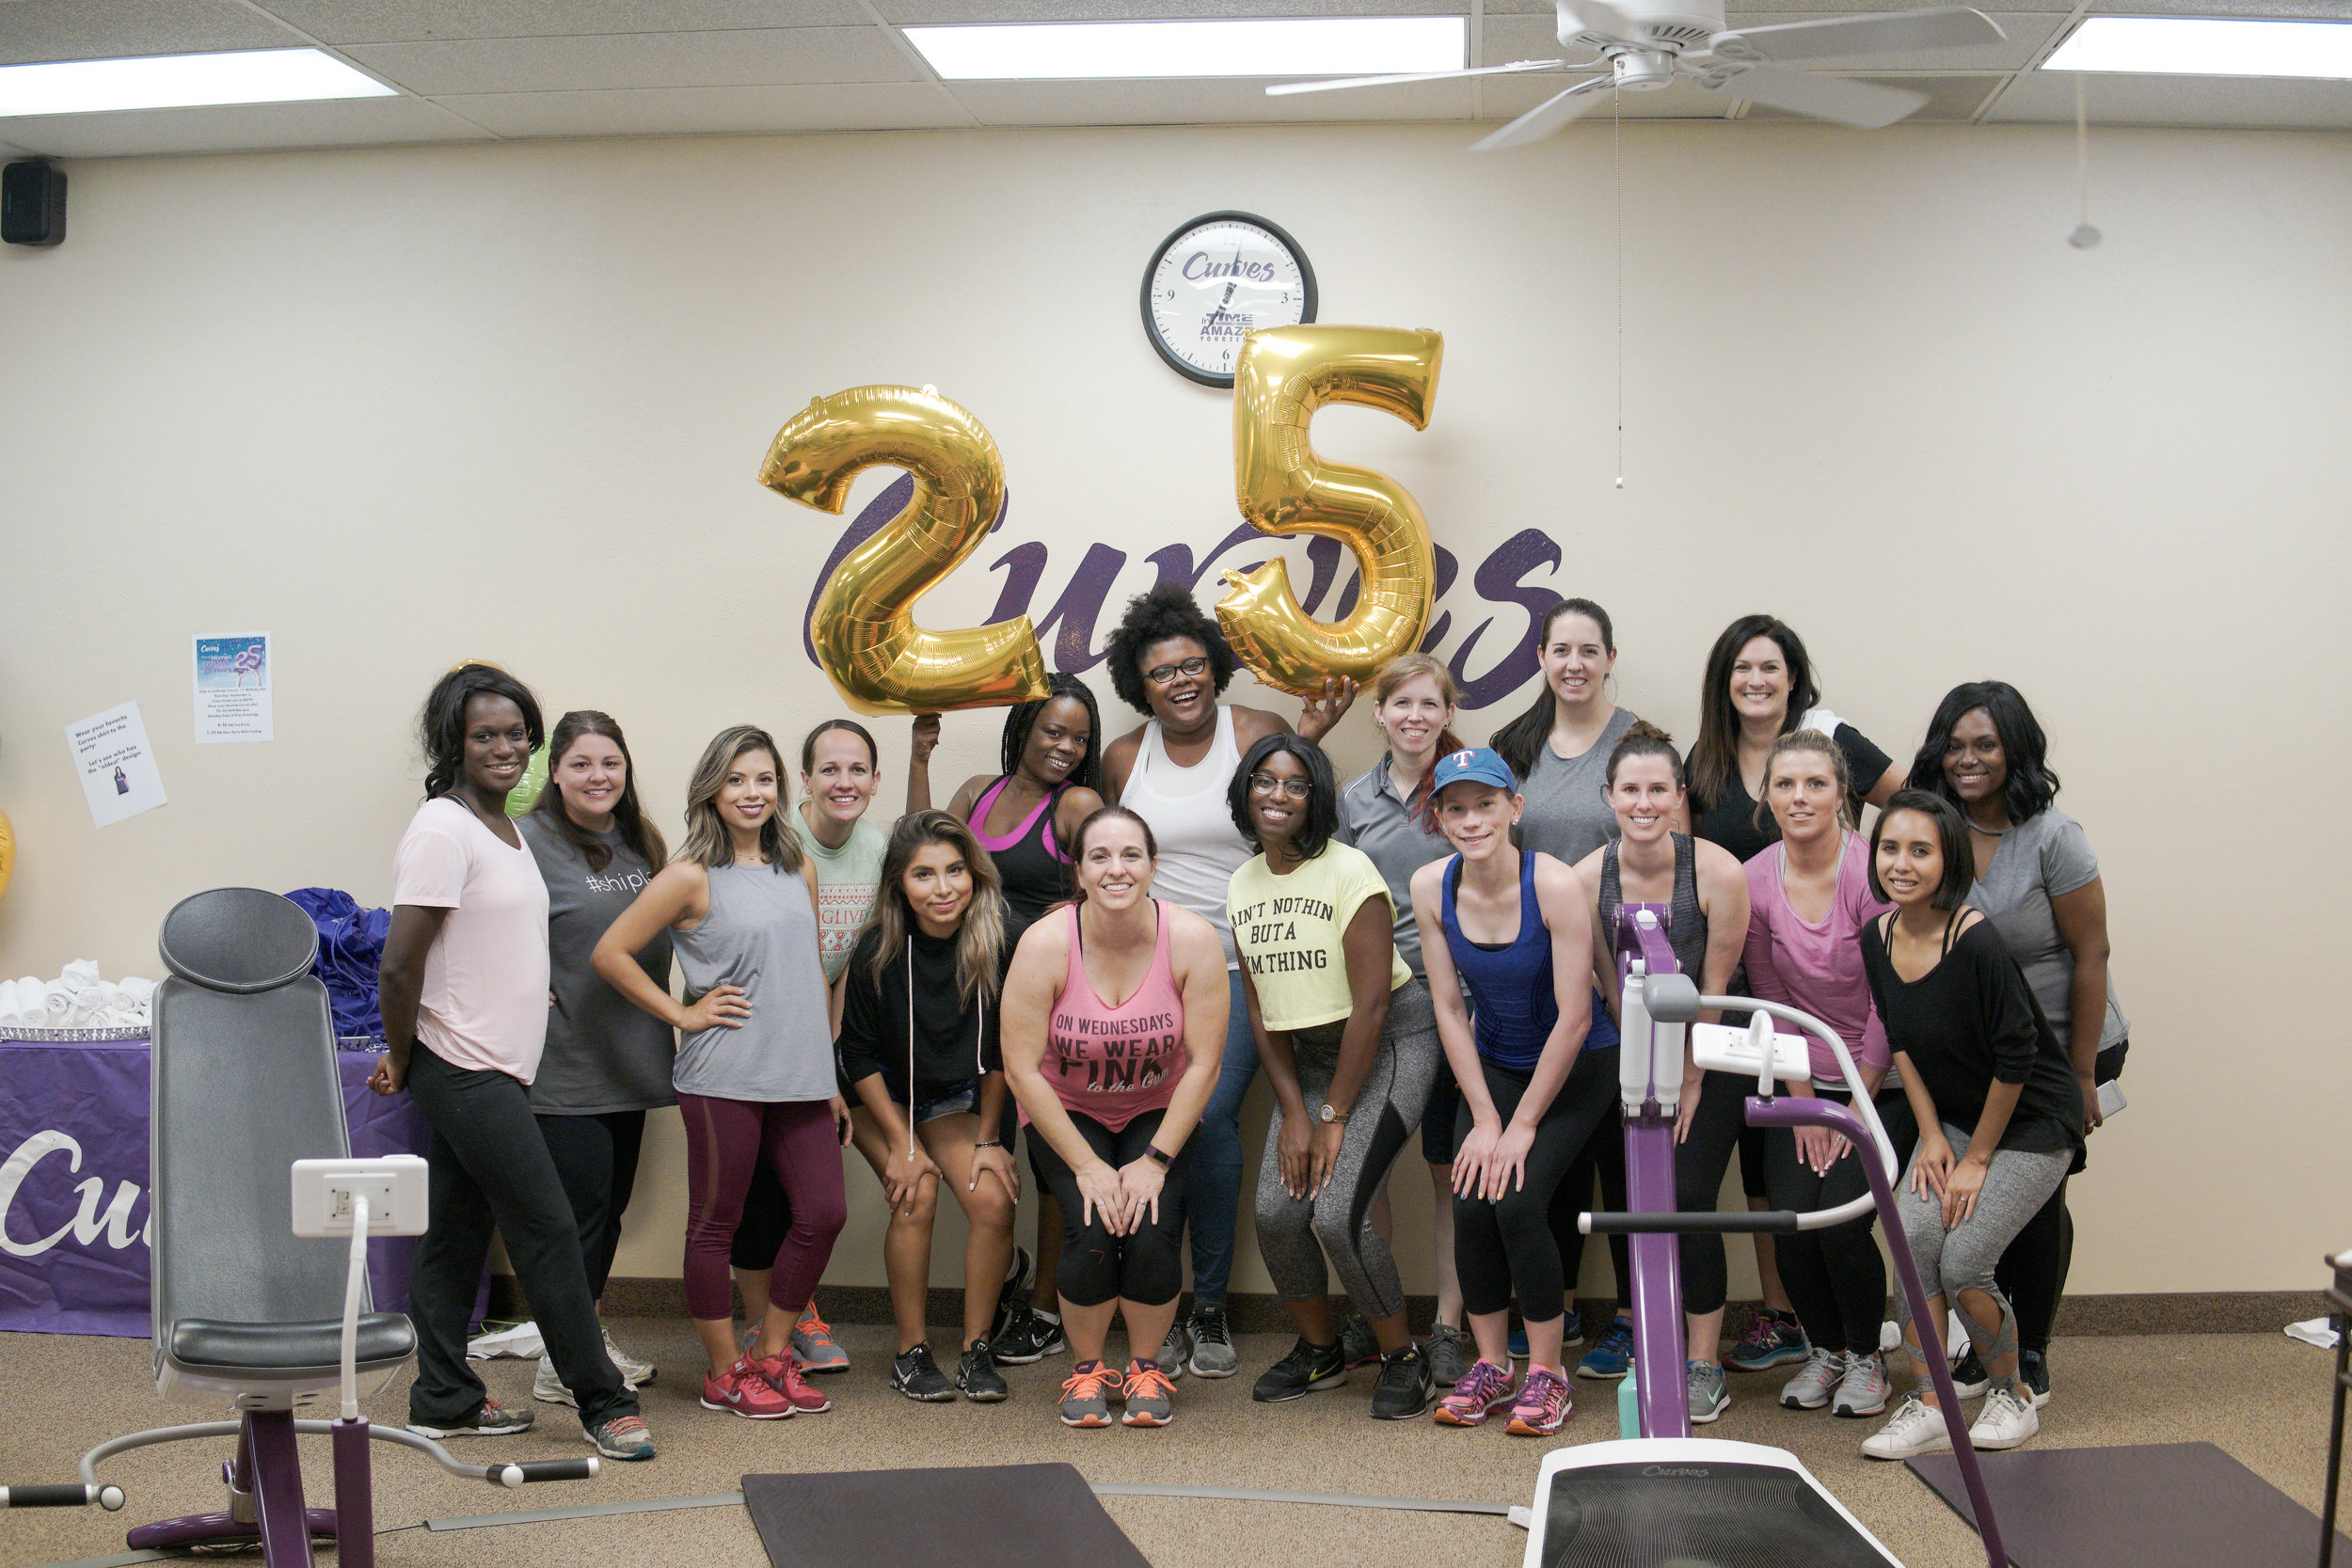 Happy 25th Curves!